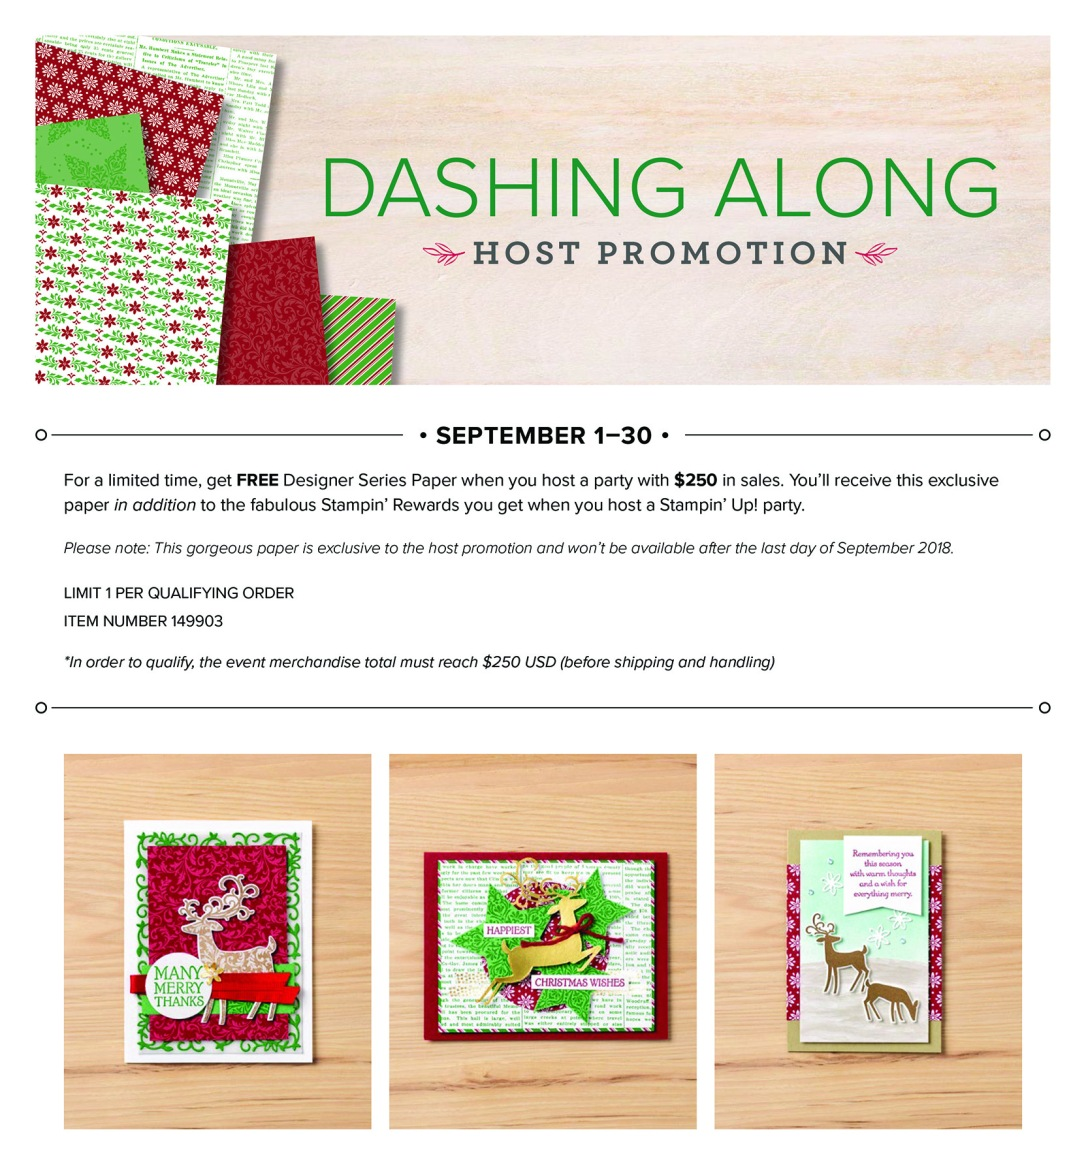 08.01.18_FLYER_DASHING_DEER_HOST_US